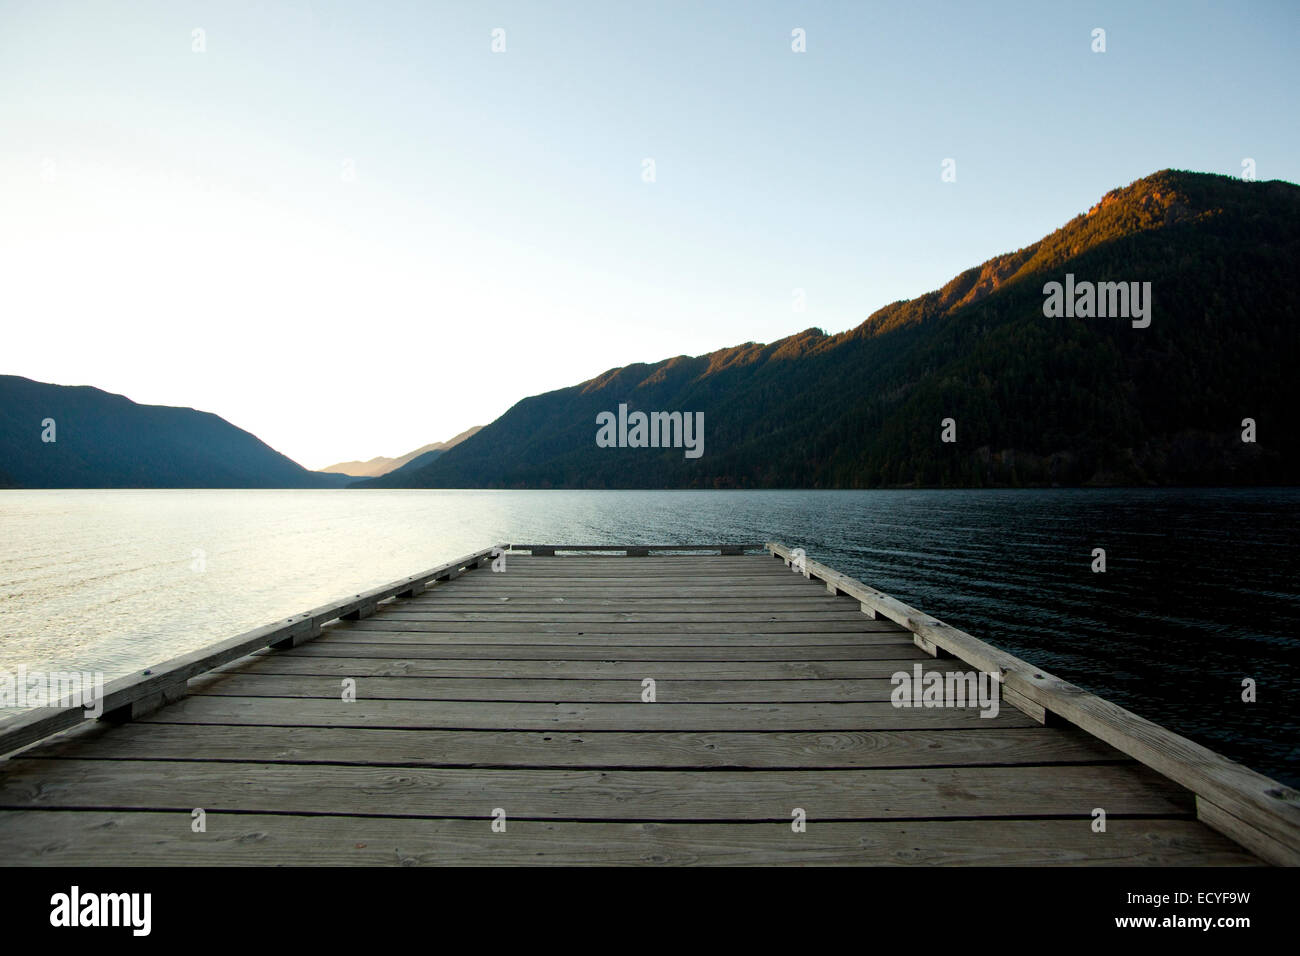 Wooden deck at lake under blue sky - Stock Image